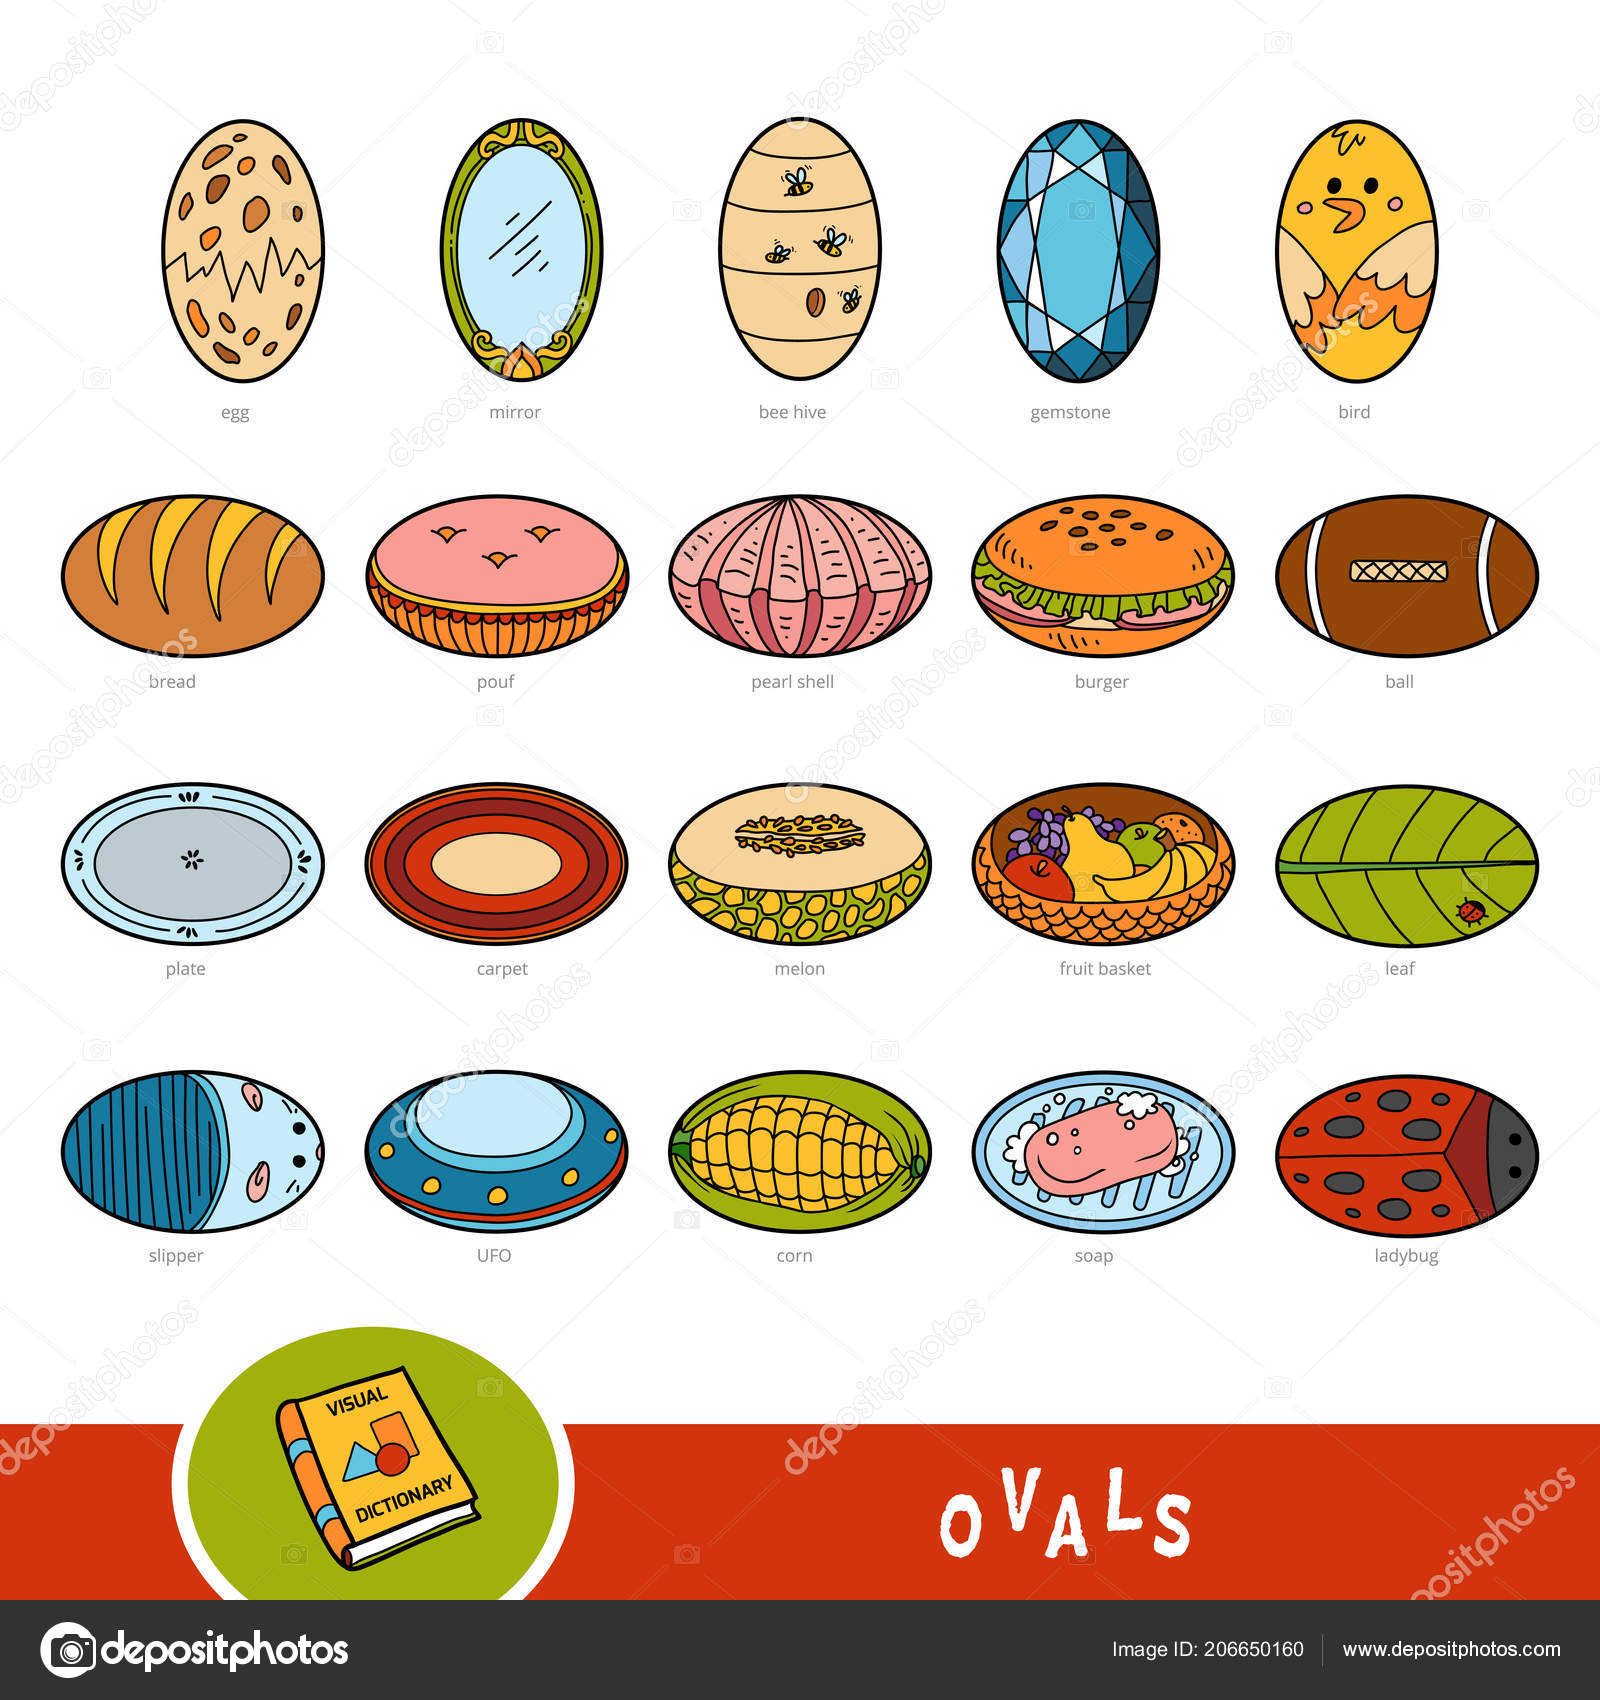 colorful set oval shape objects visual dictionary children geometric